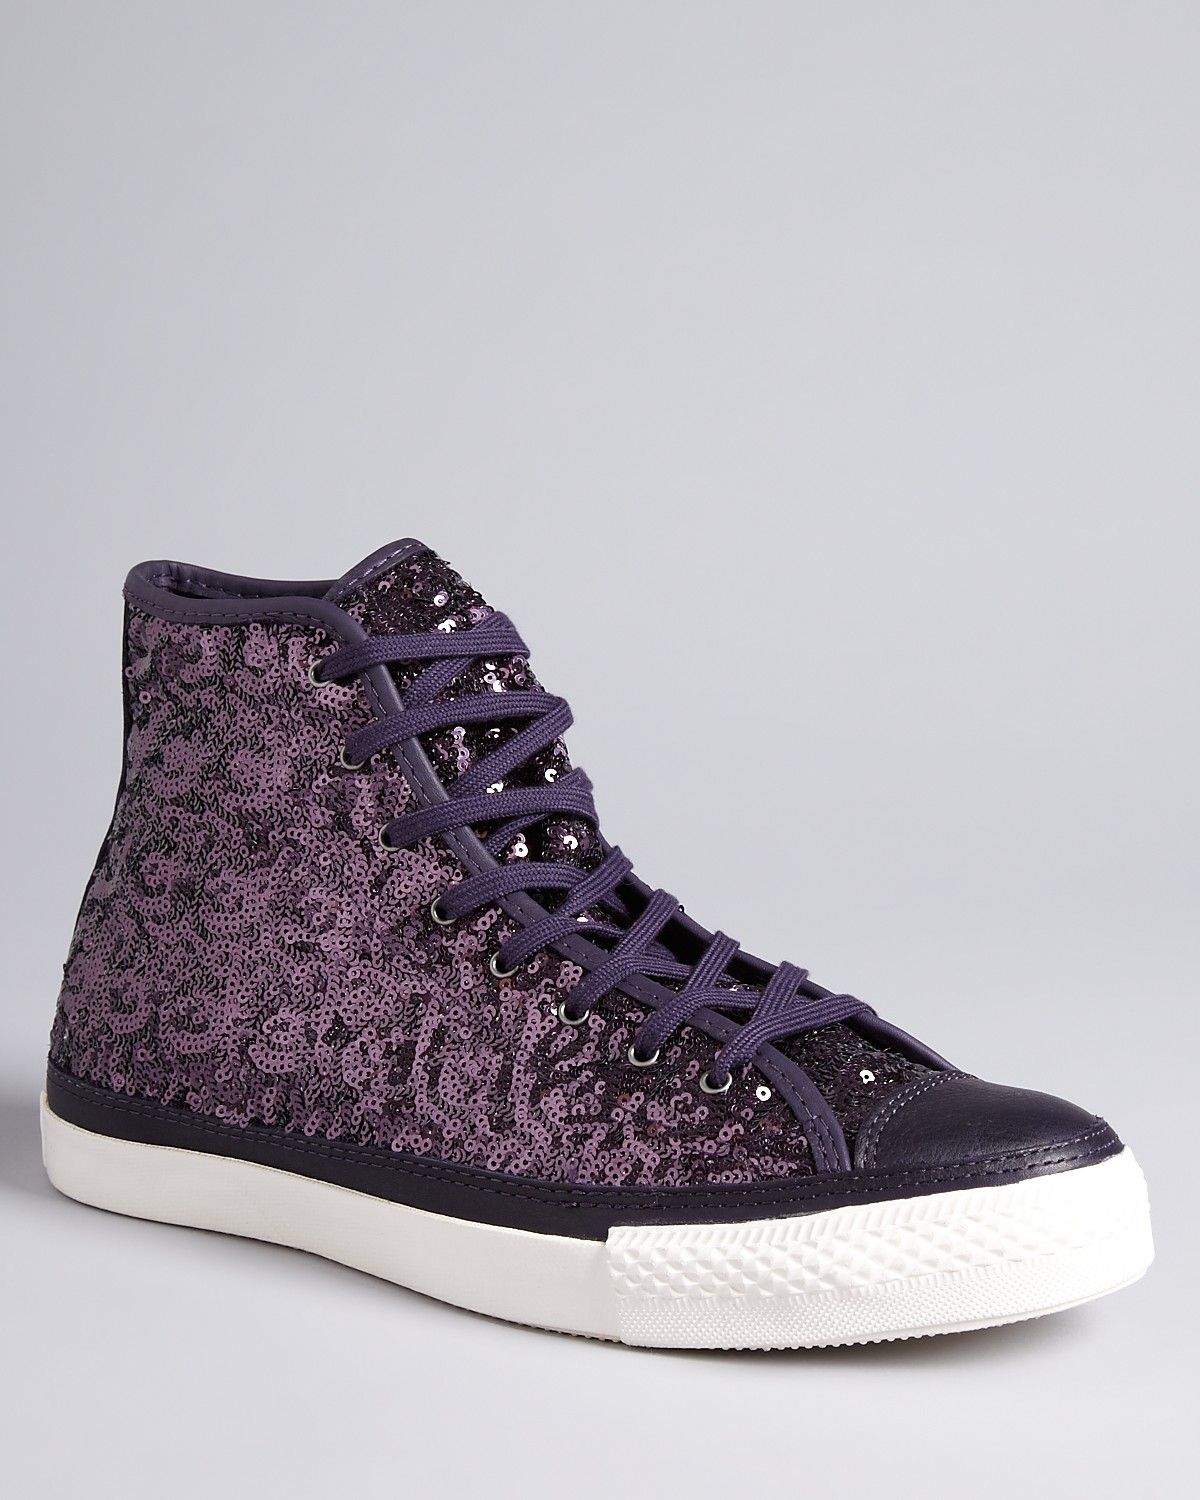 0e2c1e9322d2 Converse All Star Premium High Top Sneakers - Nightshade Sequin ...